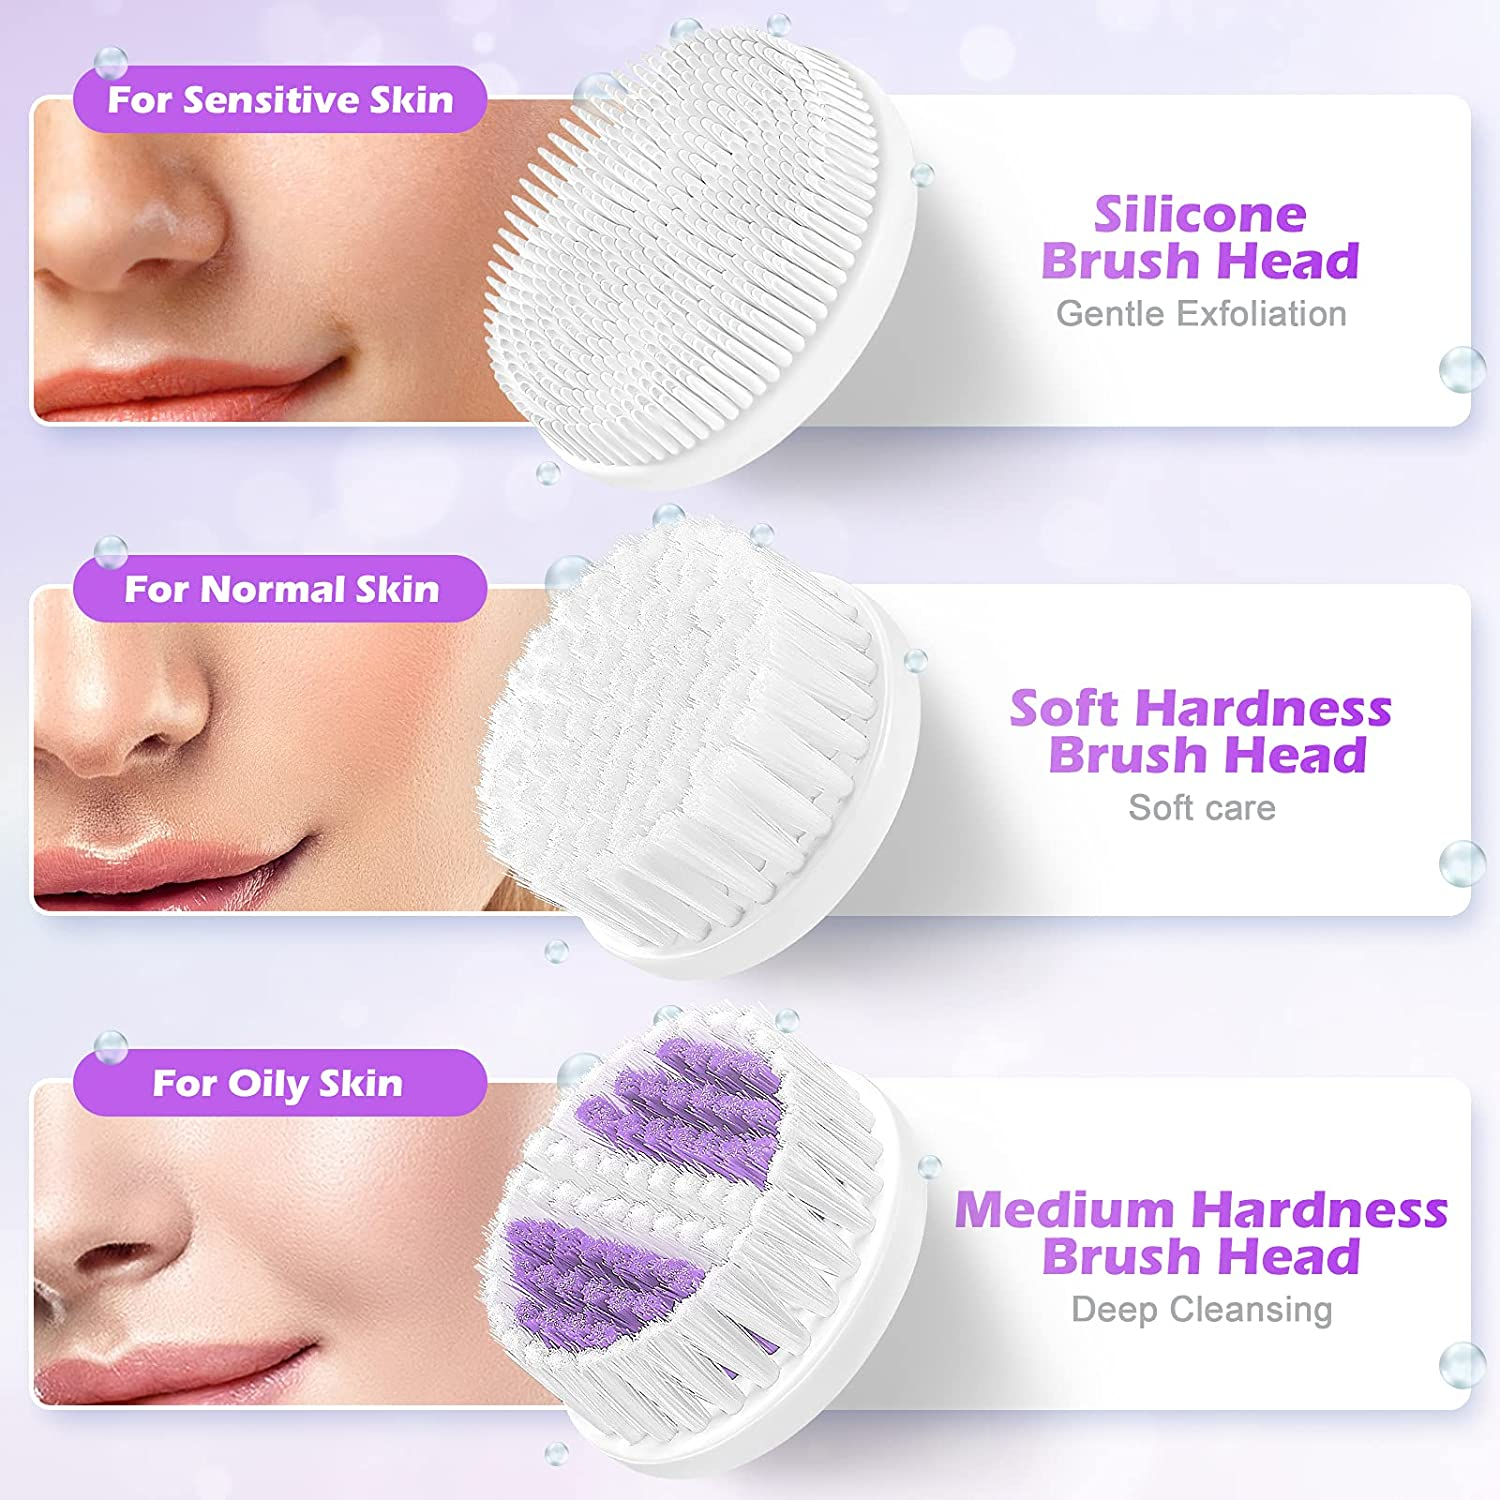 Facial Cleansing Brush,【2021 Upgraded】ETEREAUTY Waterproof Travel Face Brush with 4 Heads & Protective Case, Easy to Carry, Deep Cleansing Gentle Exfoliating for Face and Body, Purple: Beauty